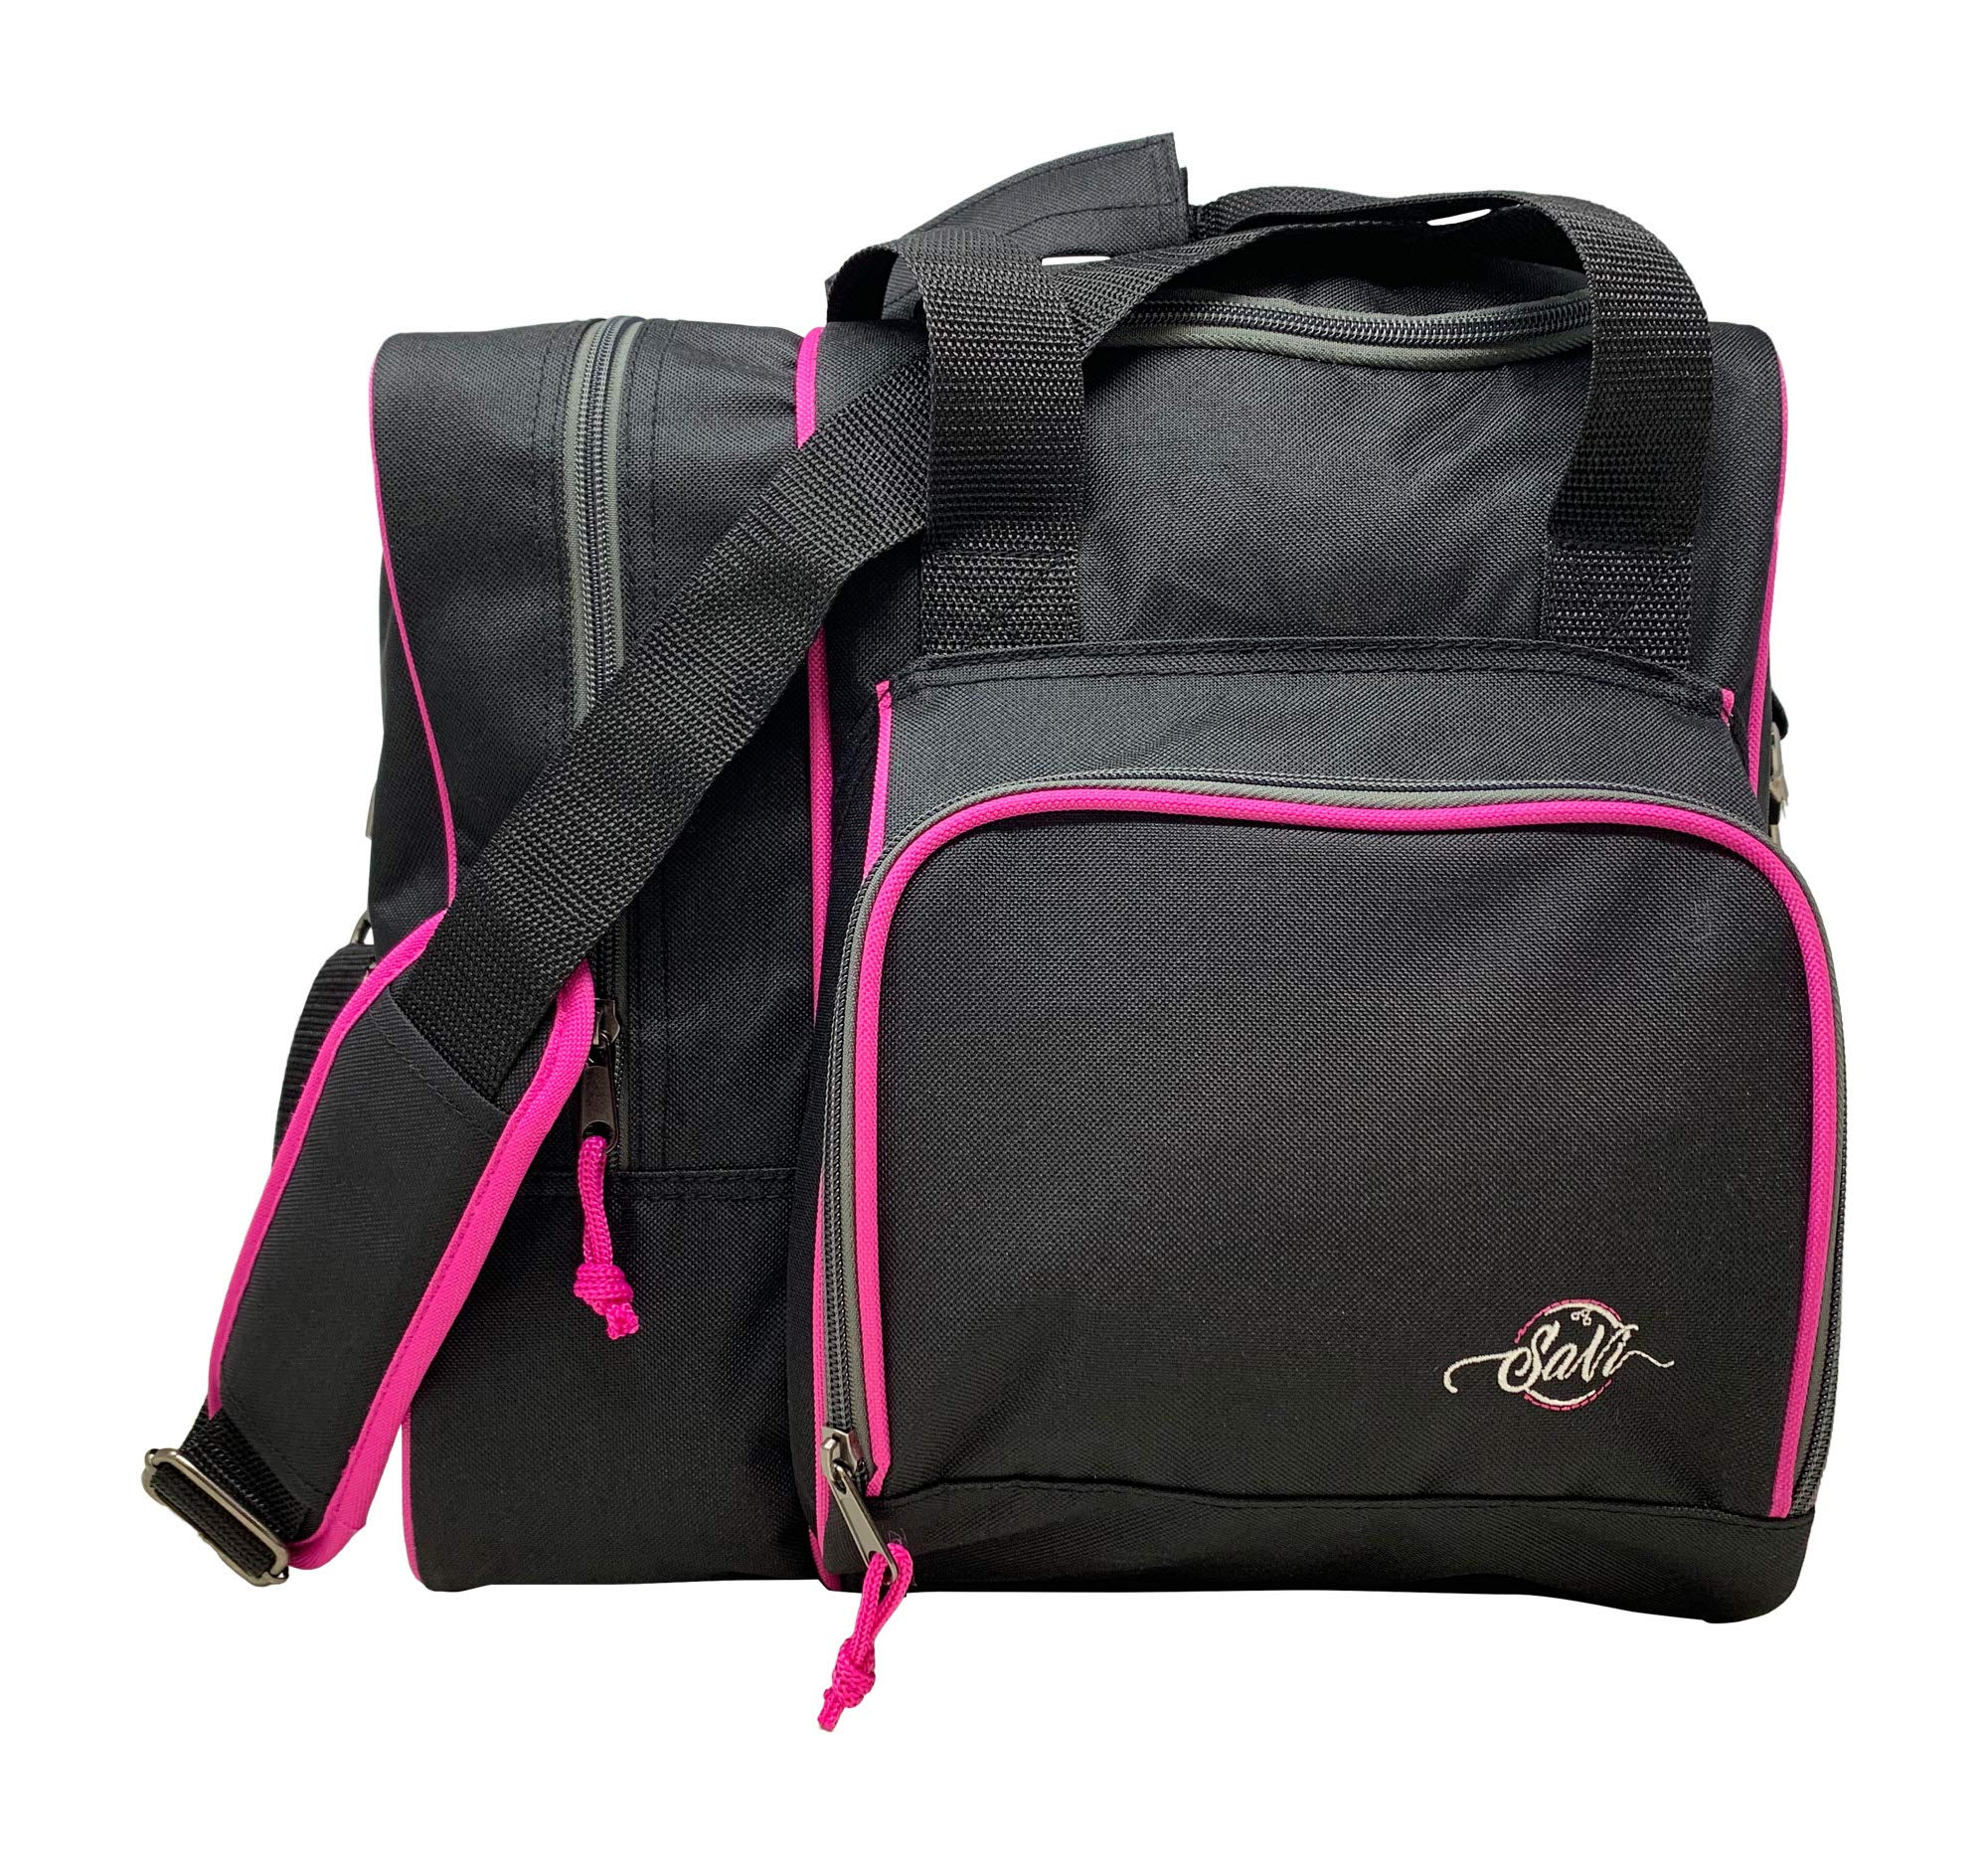 SaVi Single Deluxe Bowling Tote Bag Black/Pink Holds 1 Bowling Ball, 1 Pair of Bowling Shoes and A Front Accessory Pocket by SaVi Bowling Products